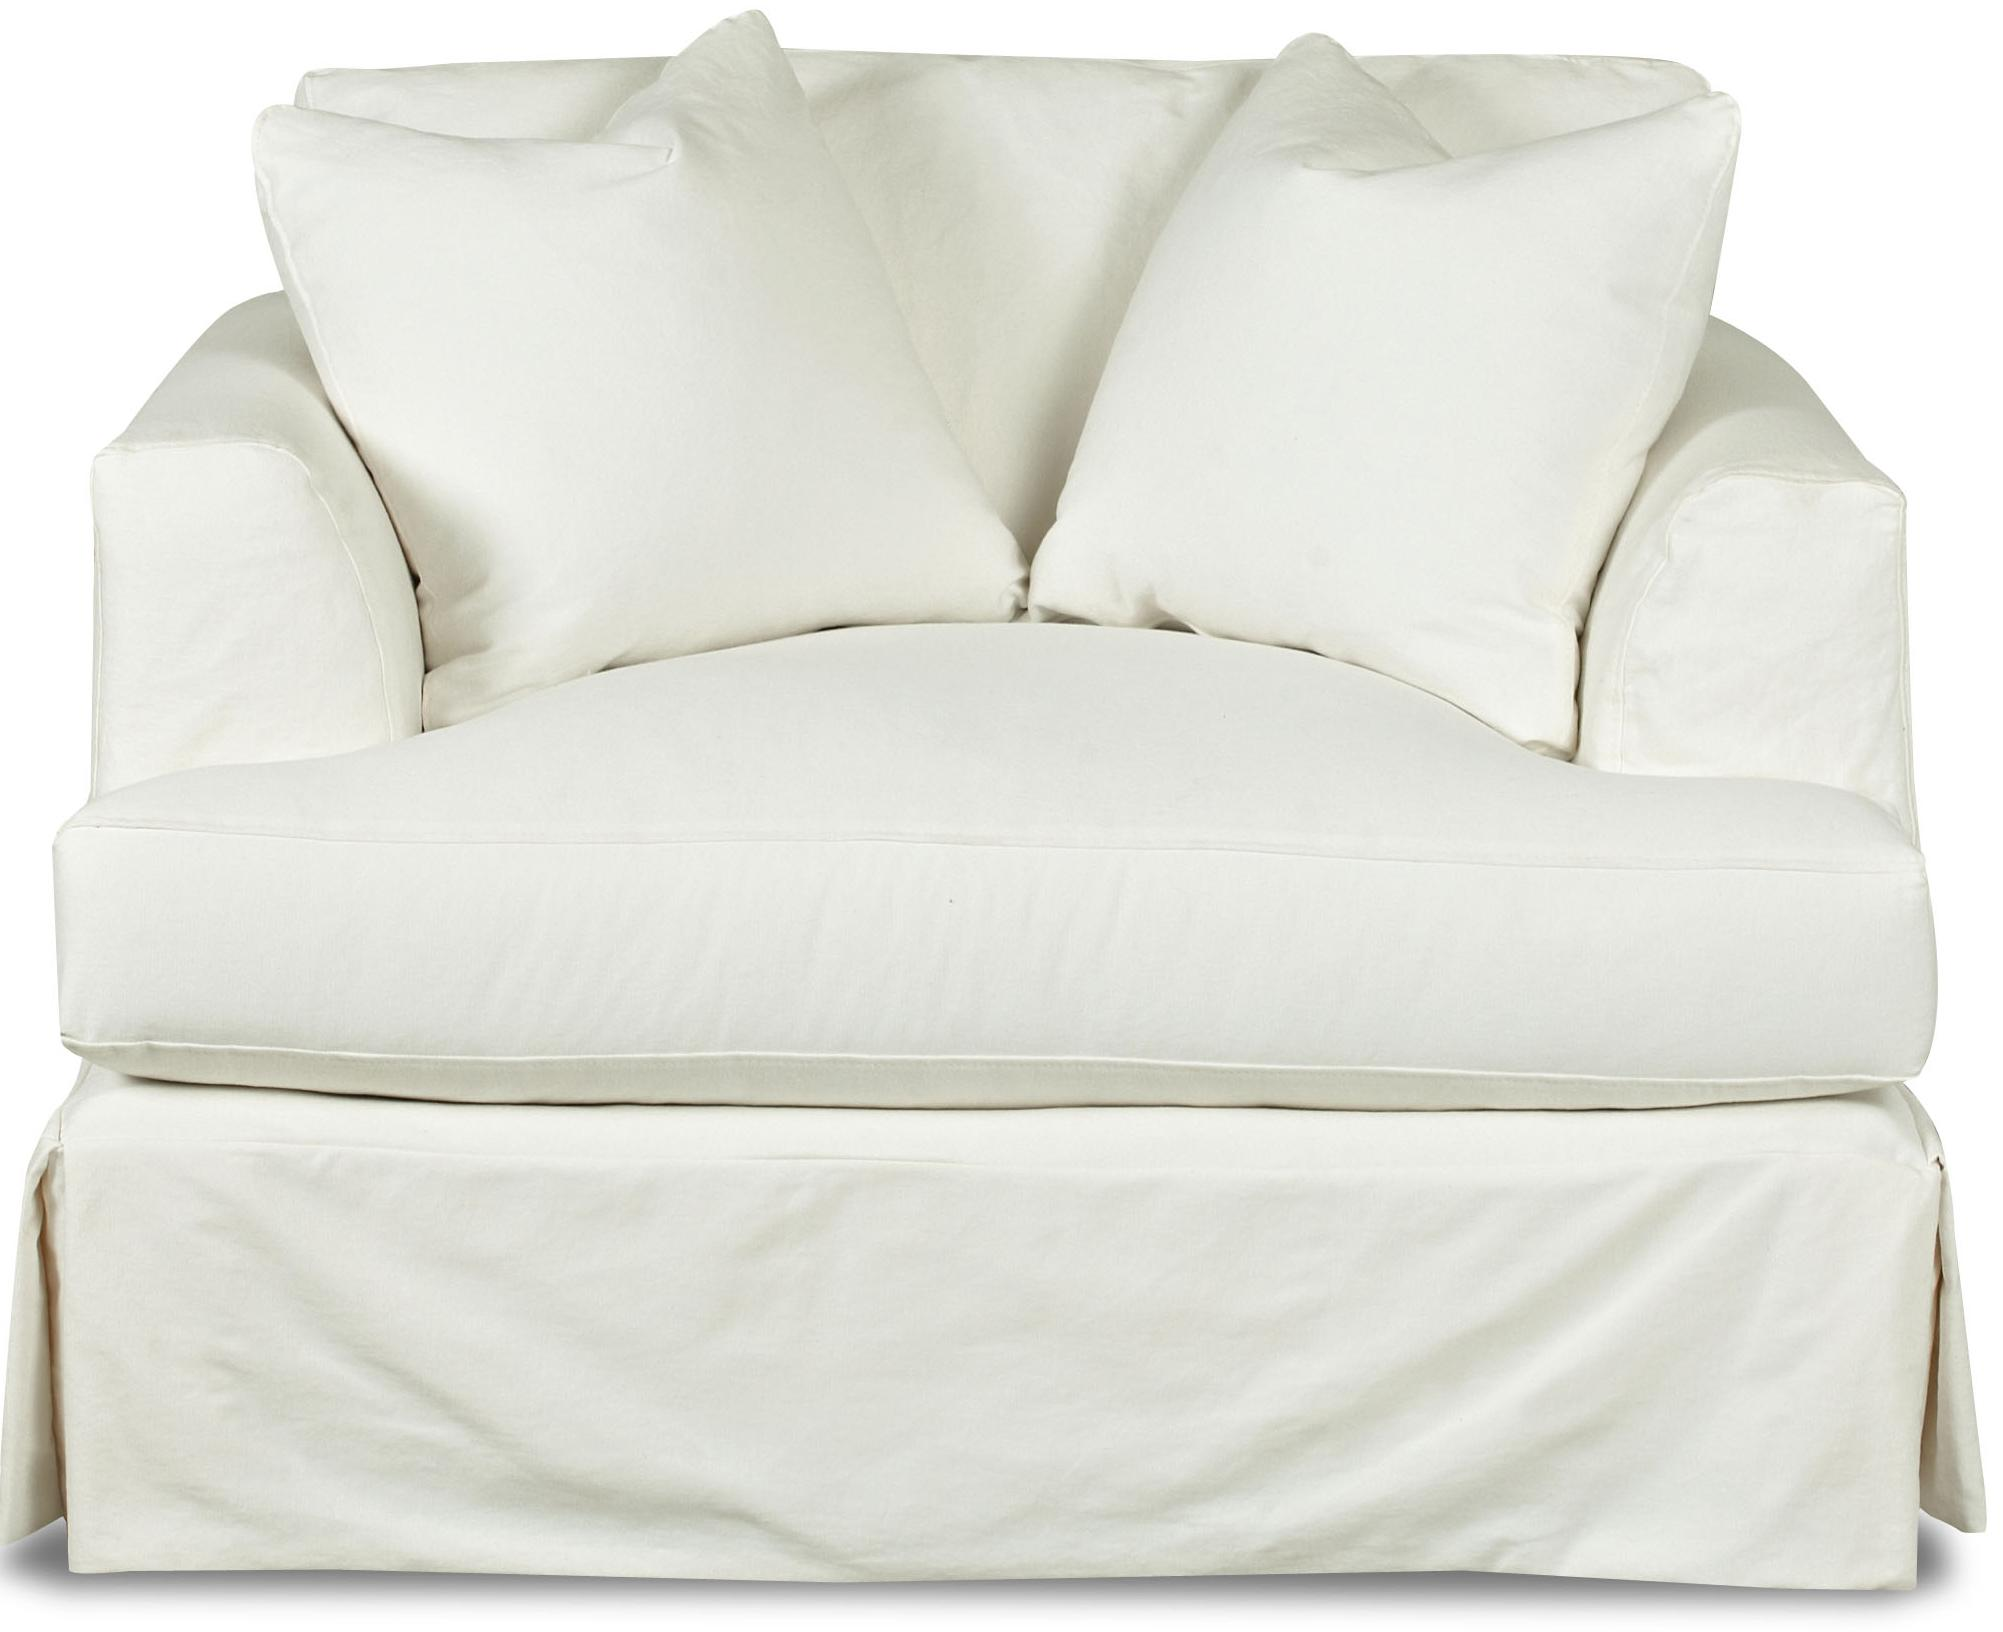 Couch Slipcover | Surefit Slipcovers | Oversized Chair Slipcover